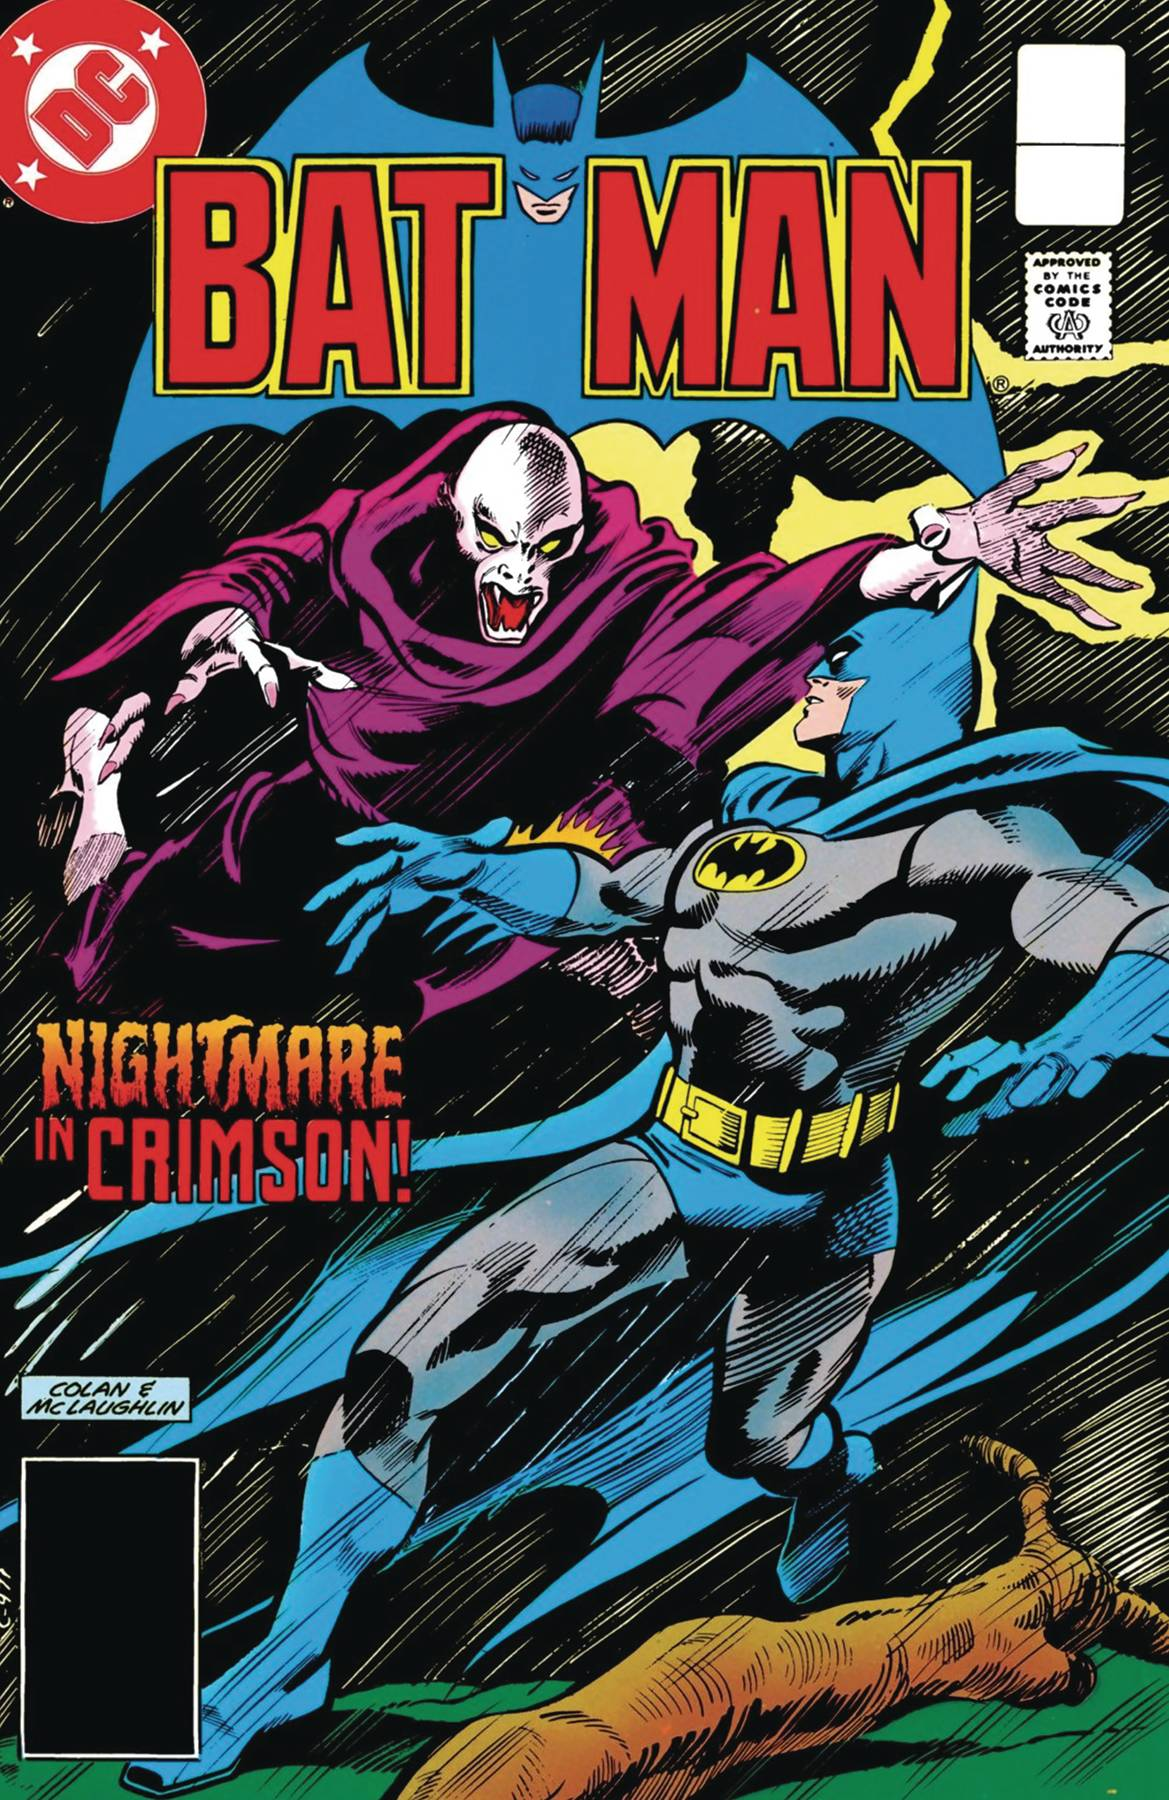 TALES OF THE BATMAN GERRY CONWAY HC 3.jpg